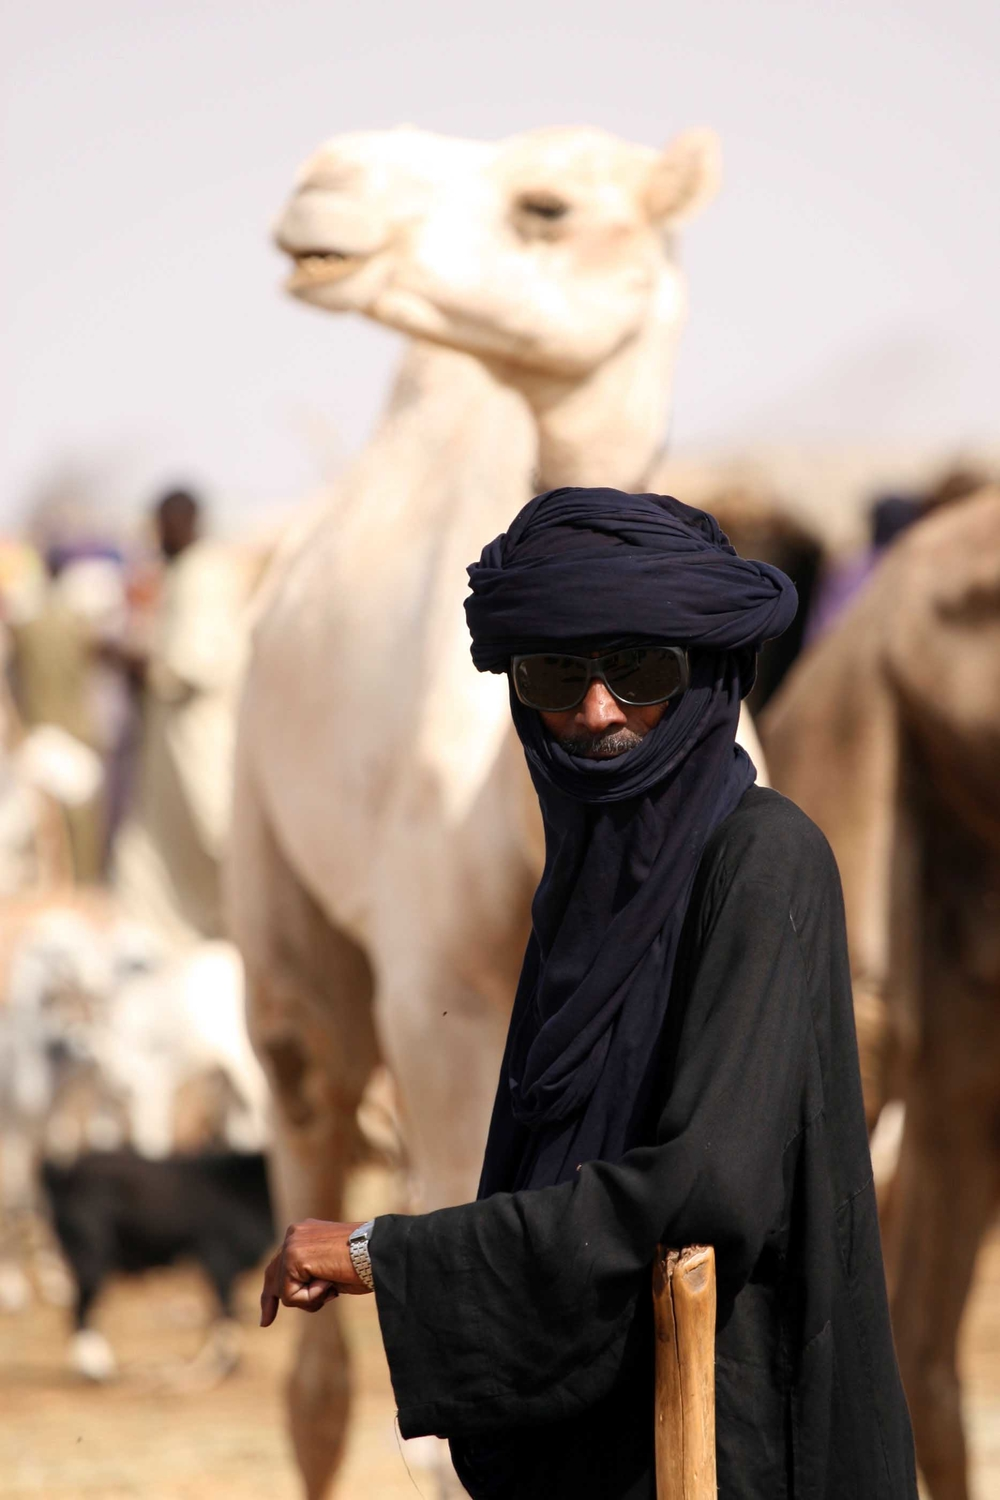 A tuareg trader, in traditional dress, waits for customers at the daily camel market in Agadez, northern Niger, 10 September 2007.  After an early 2007 tuareg rebellion, aimed at increasing political representation and a greater share of uranium revenues,